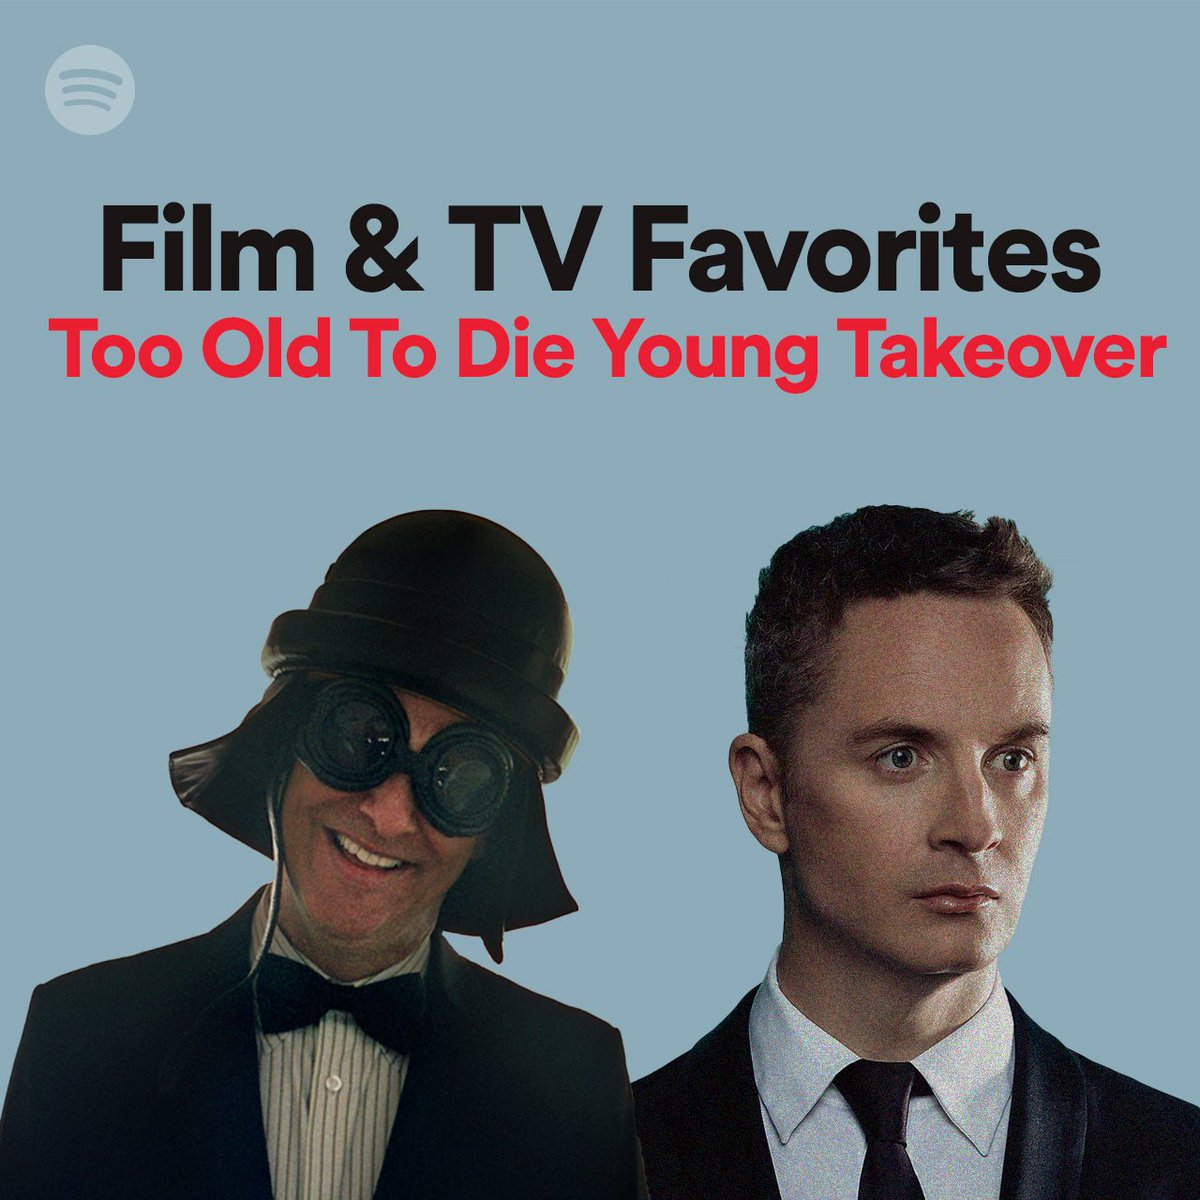 #TOTDY director @NicolasWR and composer Cliff Martinez are taking over the Film & TV Favorites Playlist on @Spotify. Check out their selections and commentary 👁 https://t.co/f5cZ4kNIE8 https://t.co/Bk5Cke3pGO